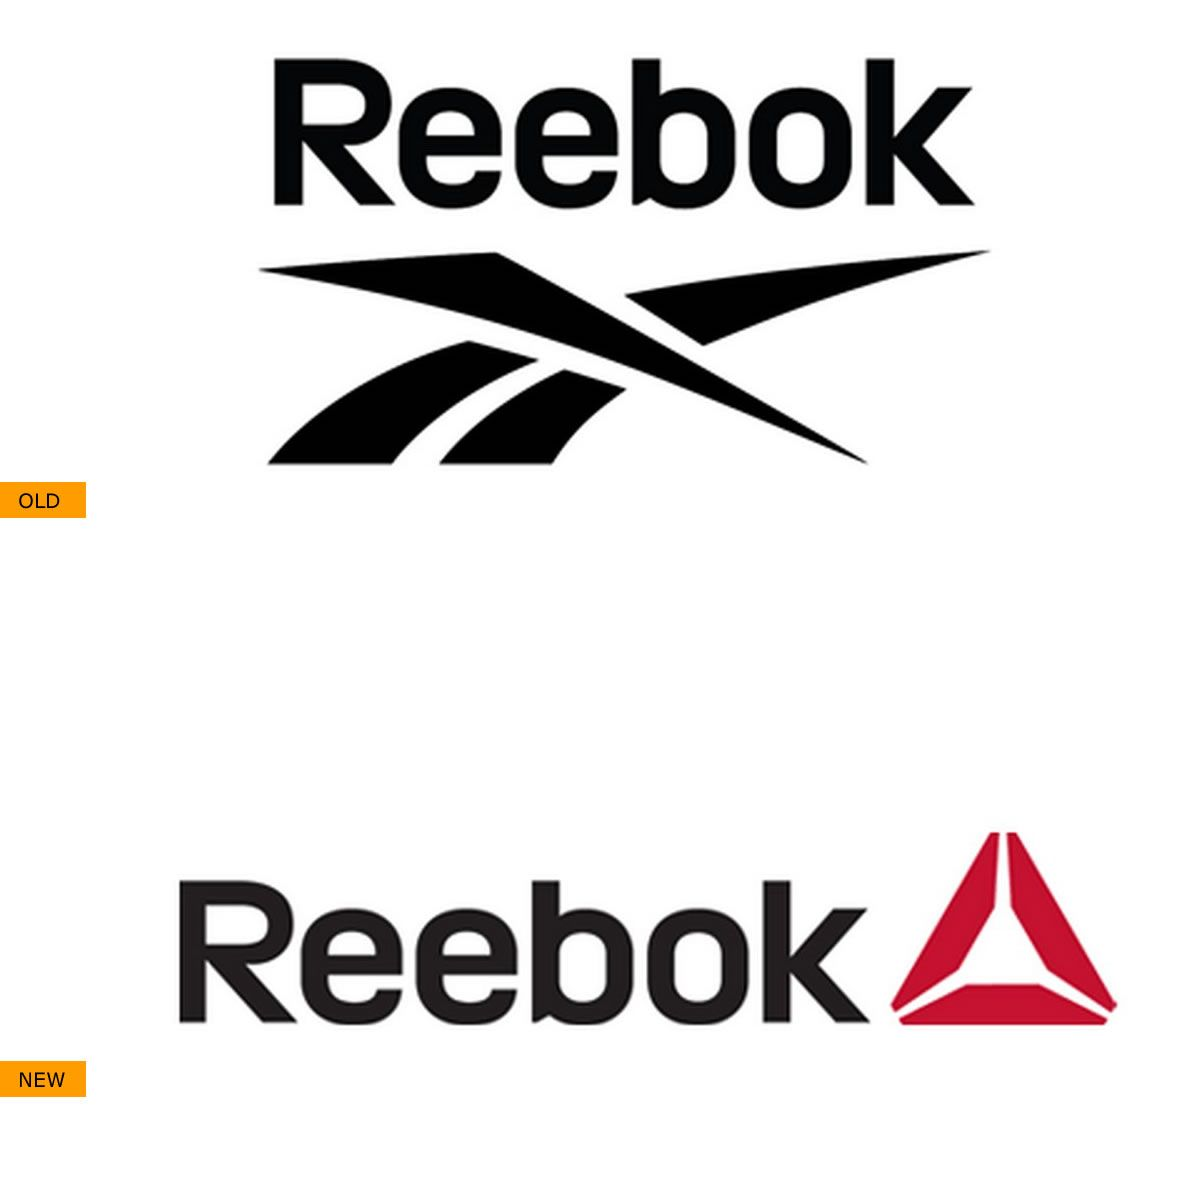 New Reebok Logo 2014 Design Logo Evolution Pinterest Logos